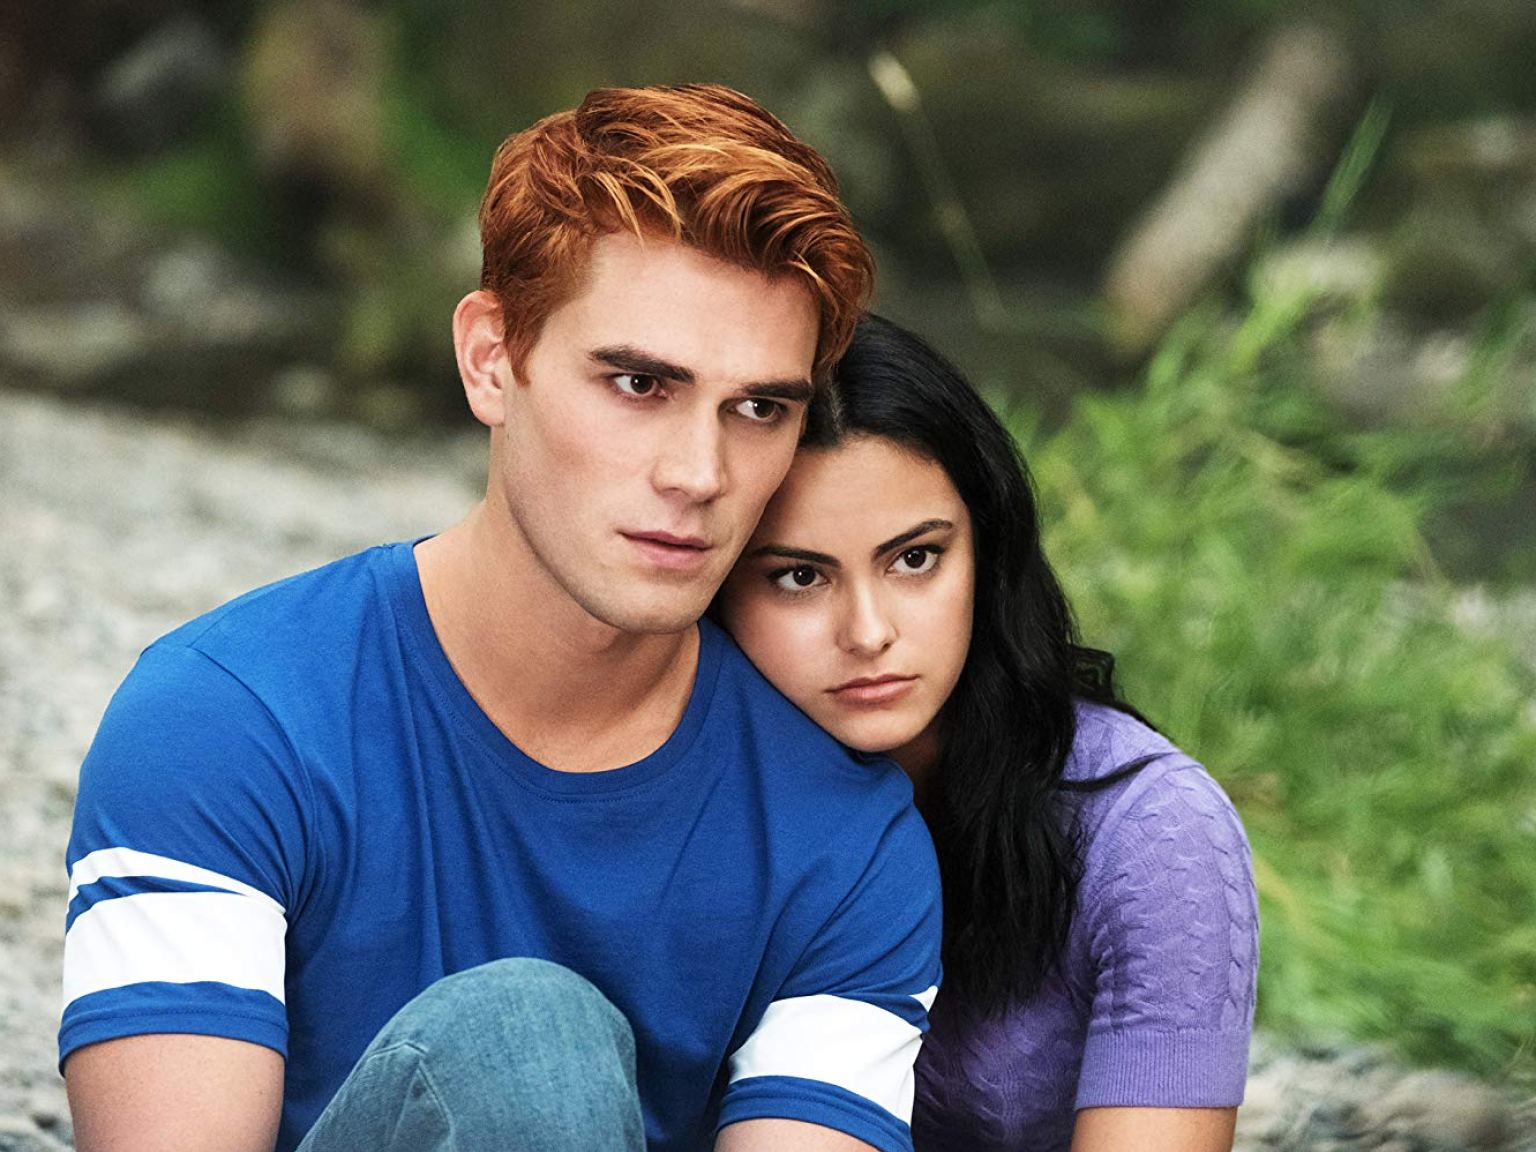 kj-apa-and-camila-mendes-reveal-how-they-film-kissing-scenes-for-riverdale-amid-the-pandemic